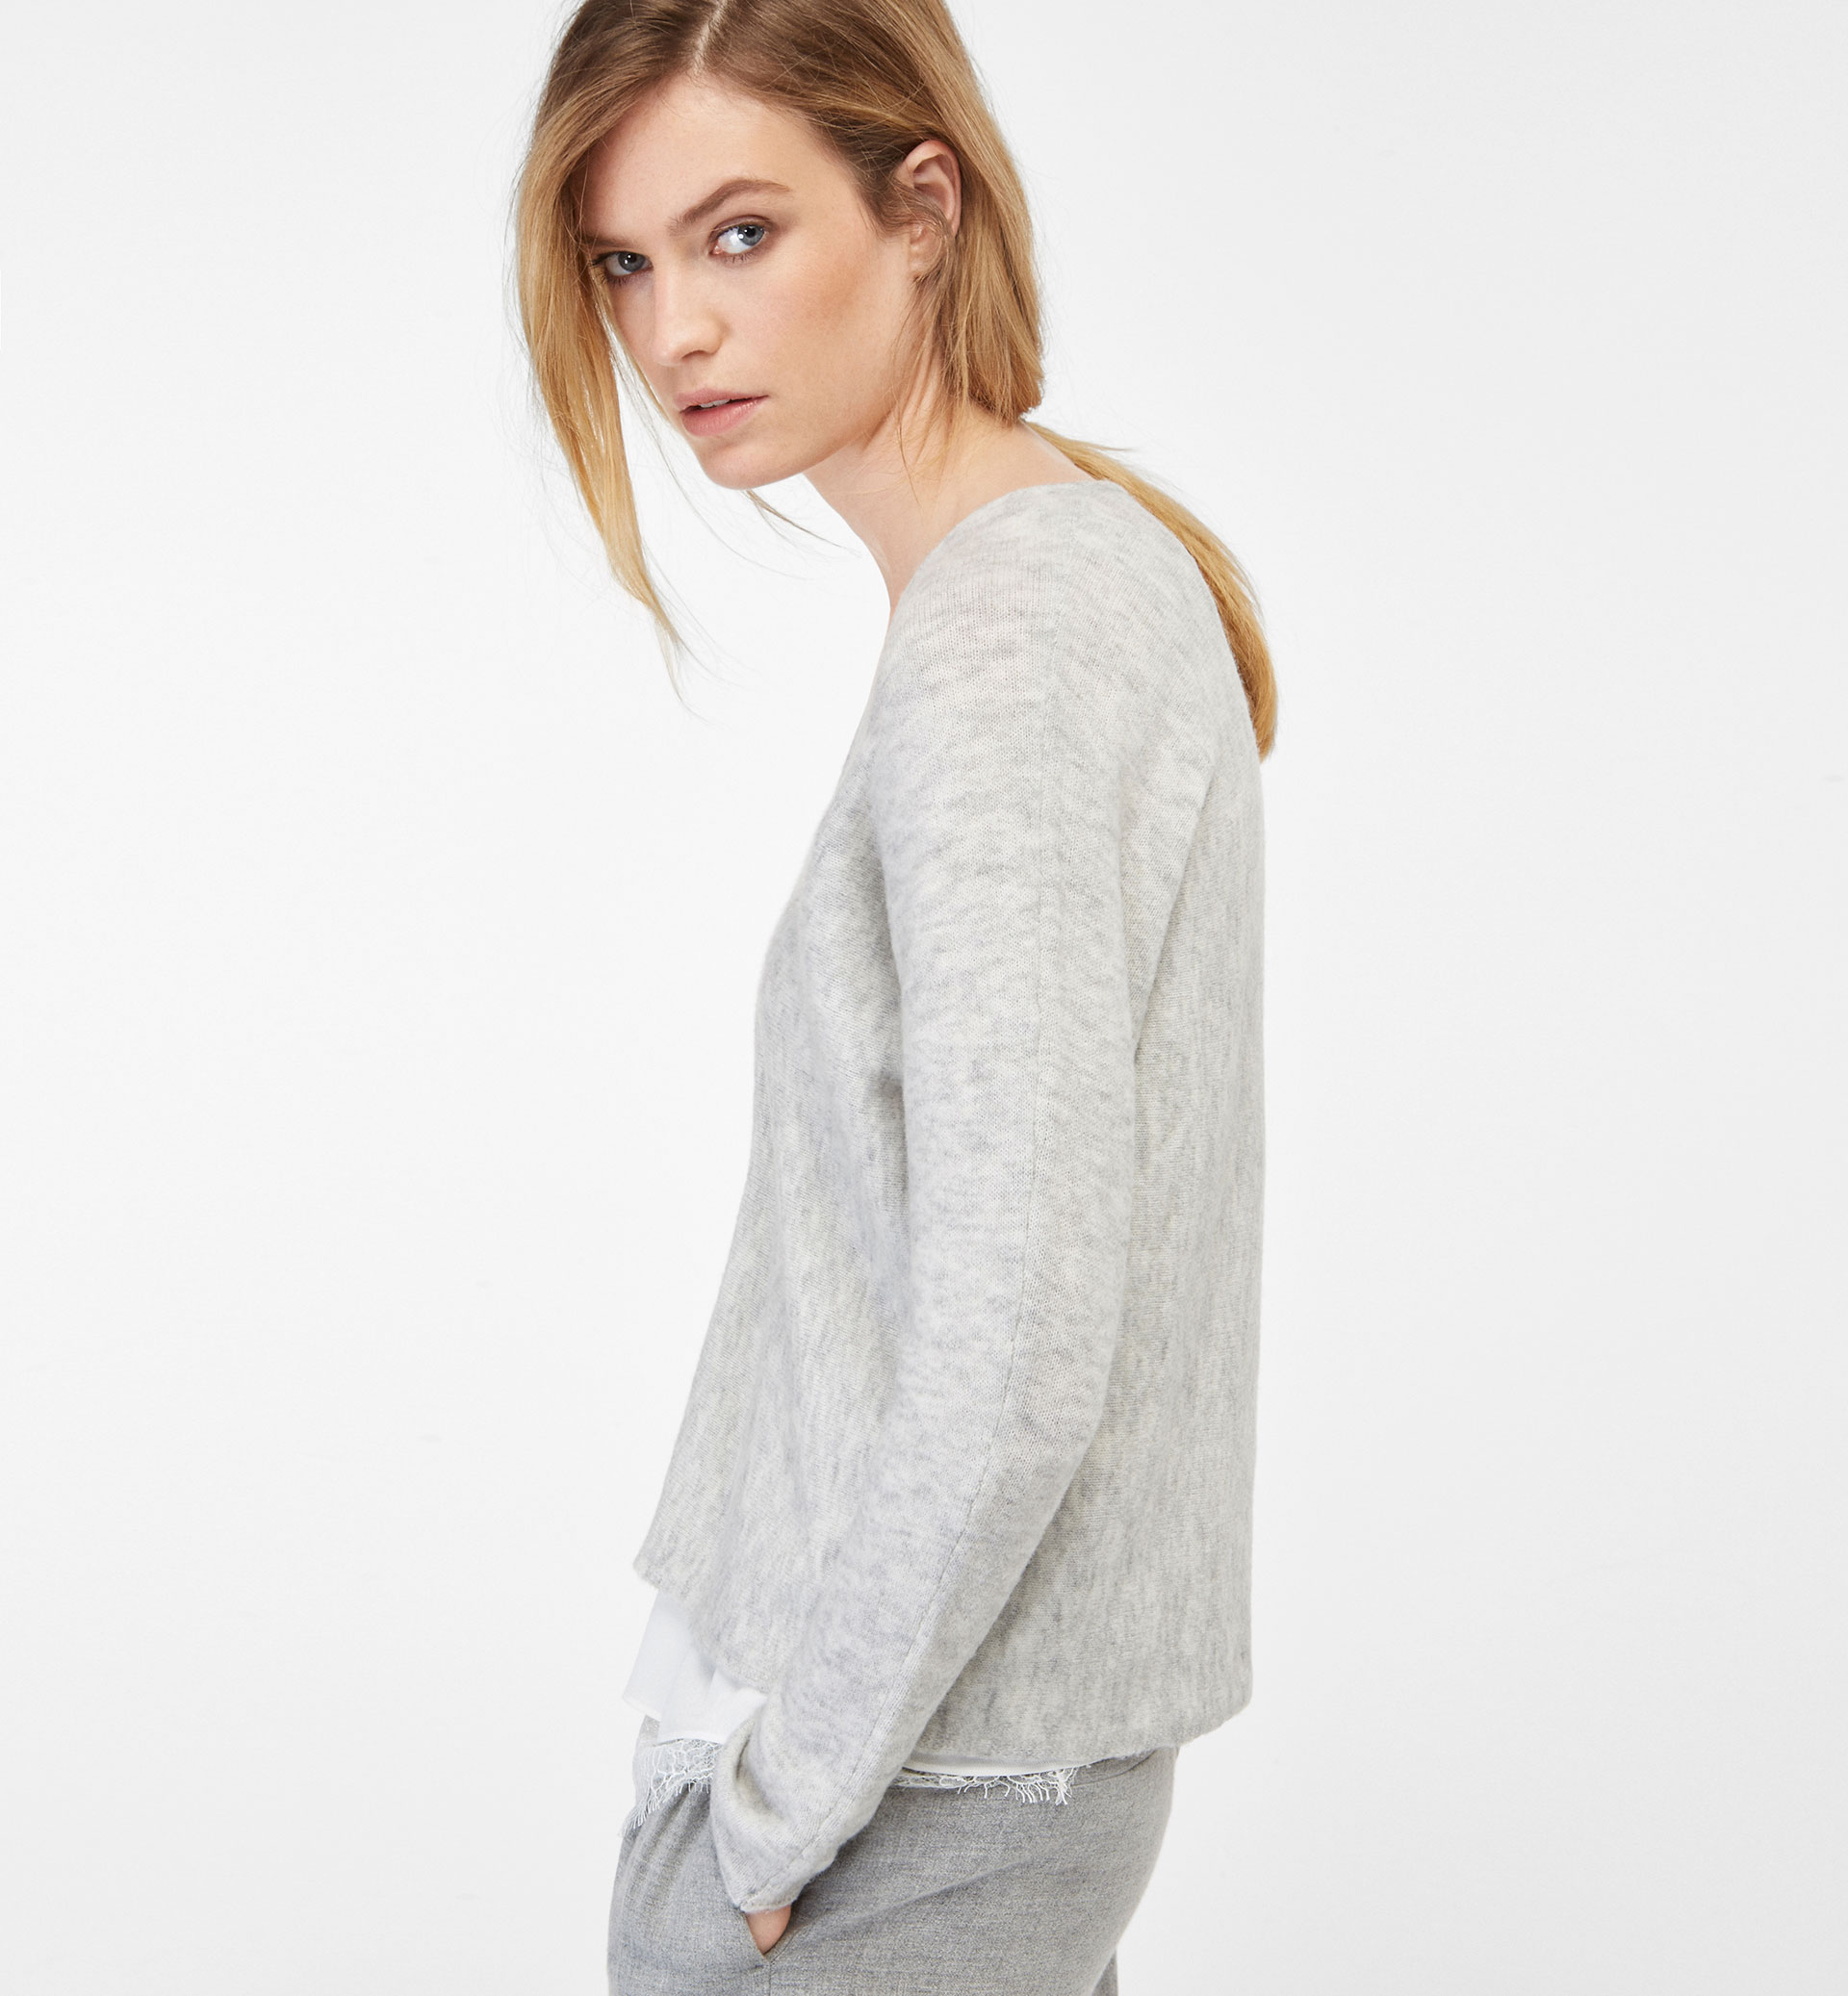 CAPE-STYLE SWEATER